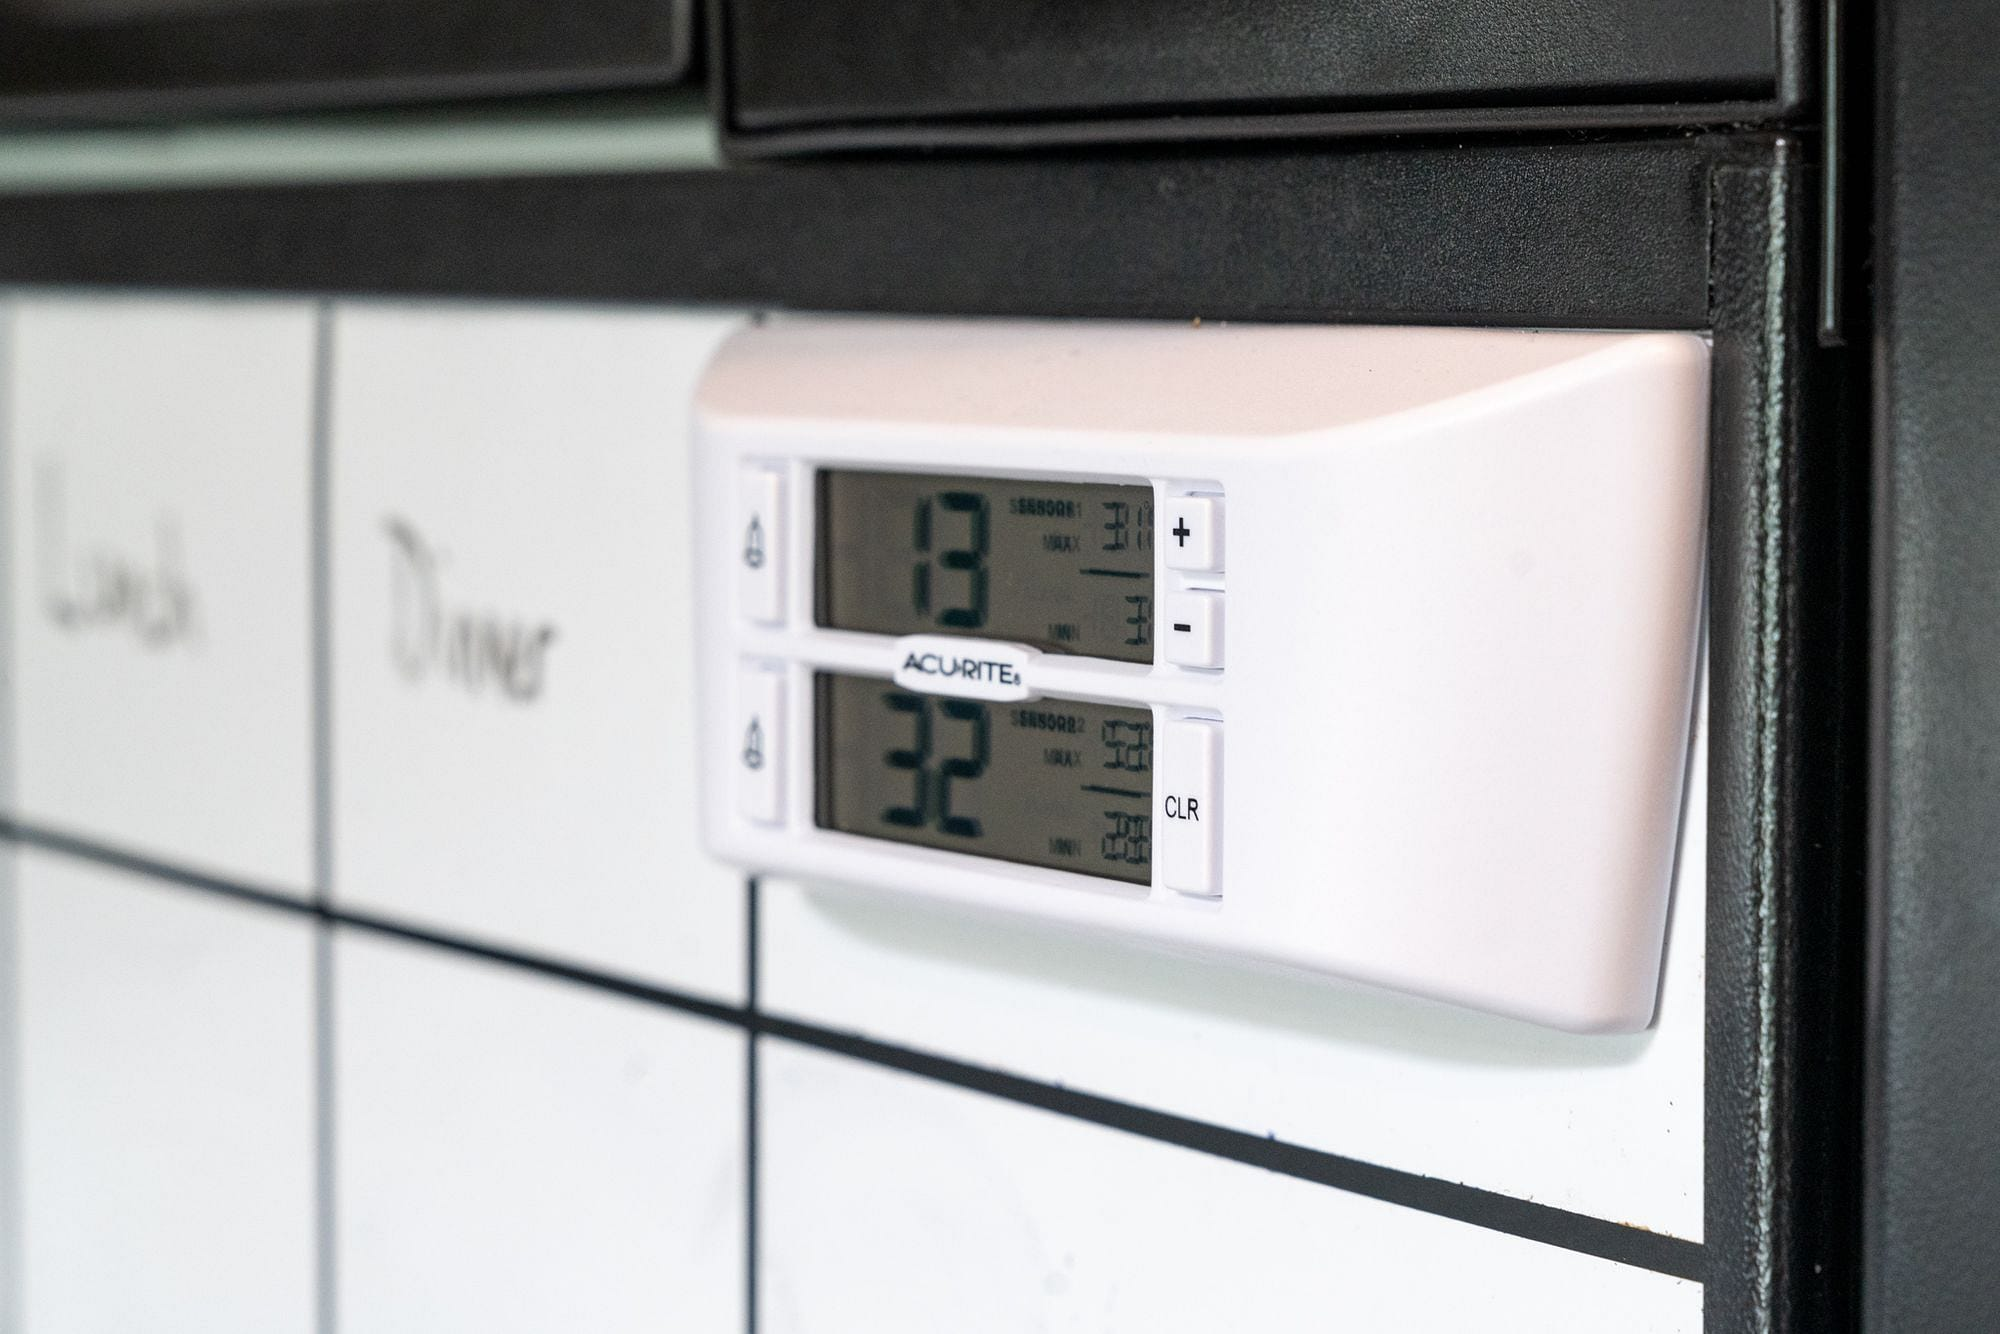 Monitoring RV Fridge & Freezer Temperatures with the AcuRite 986